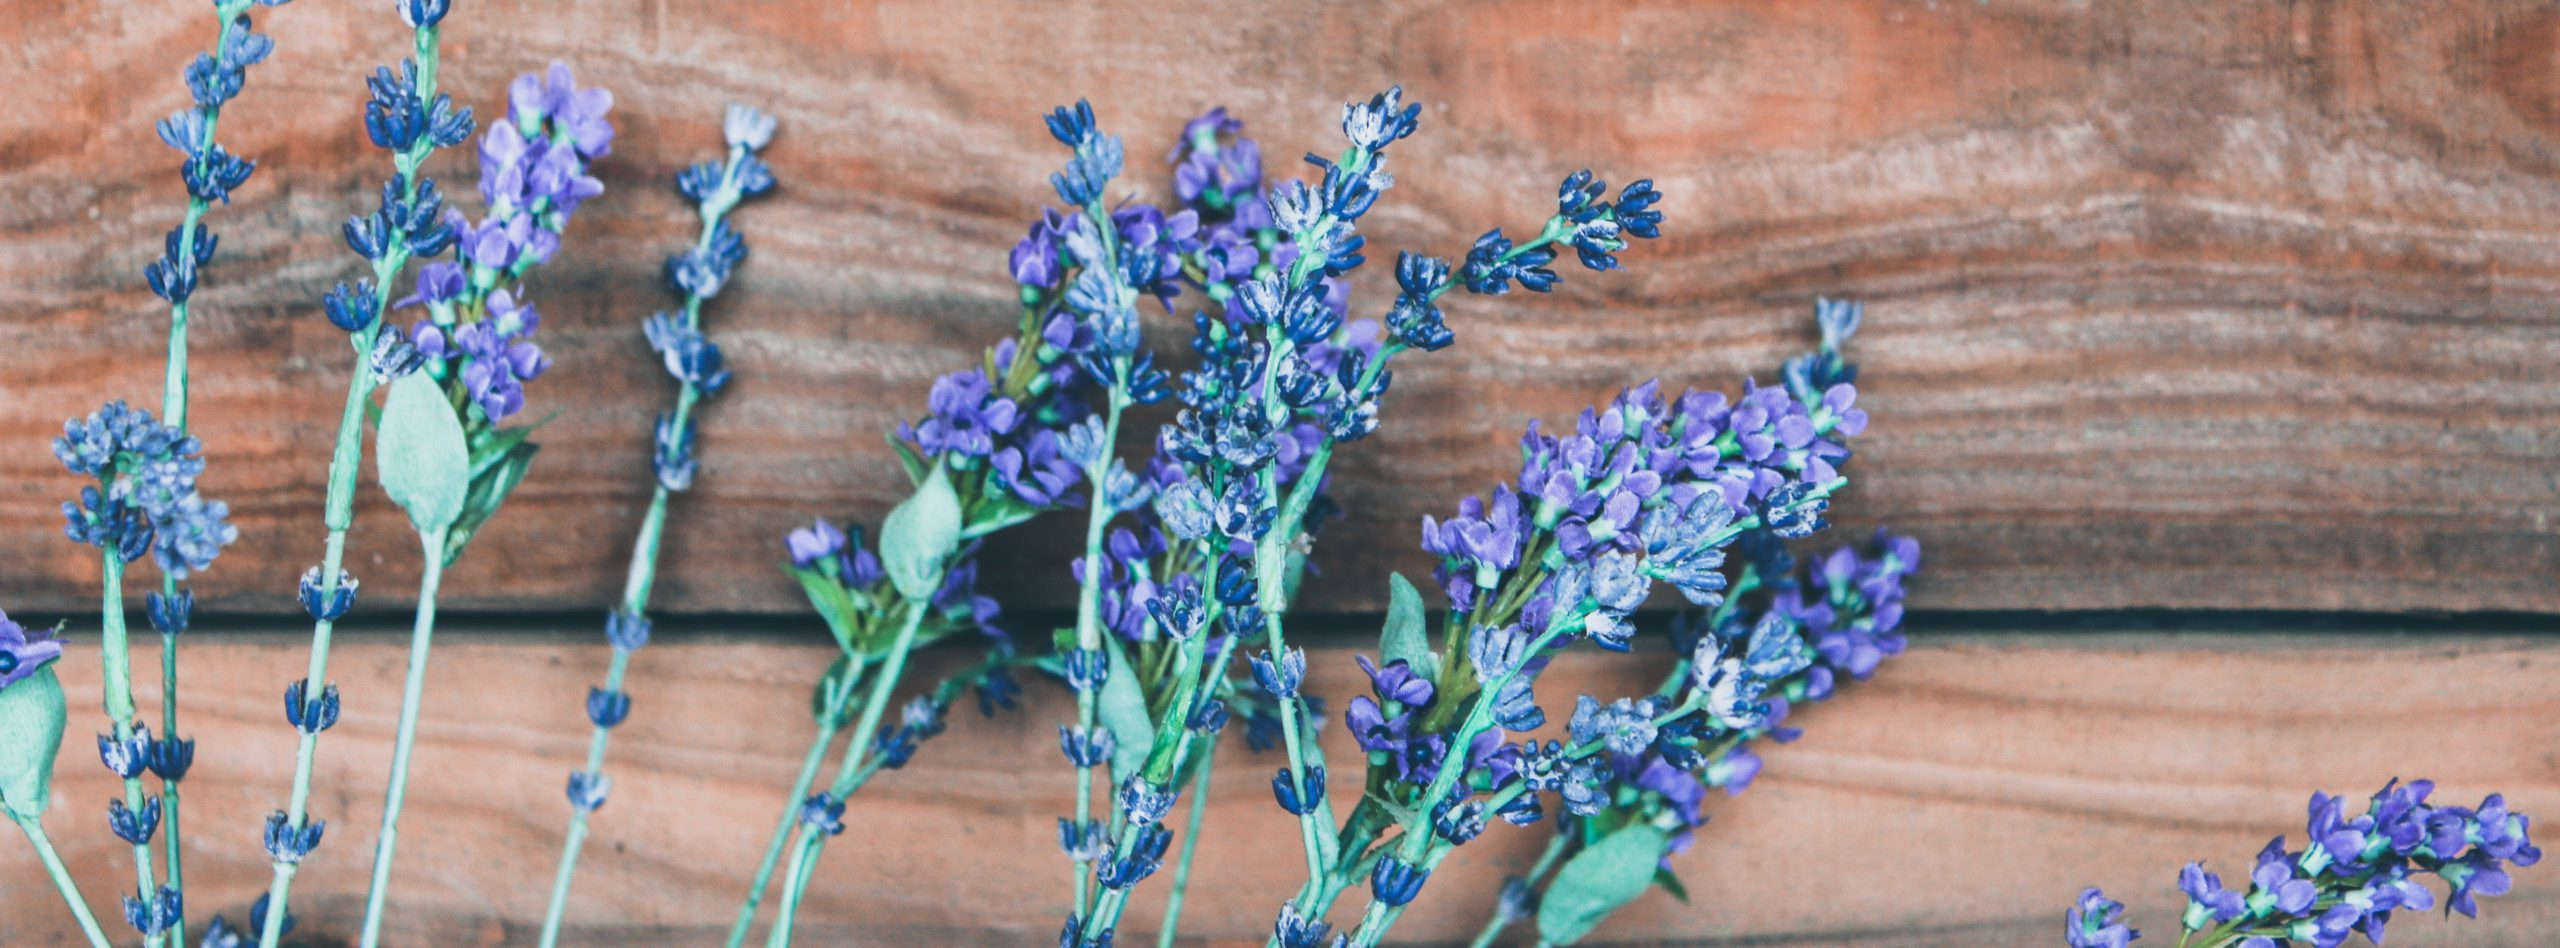 How Essential Oils Smell- lavender